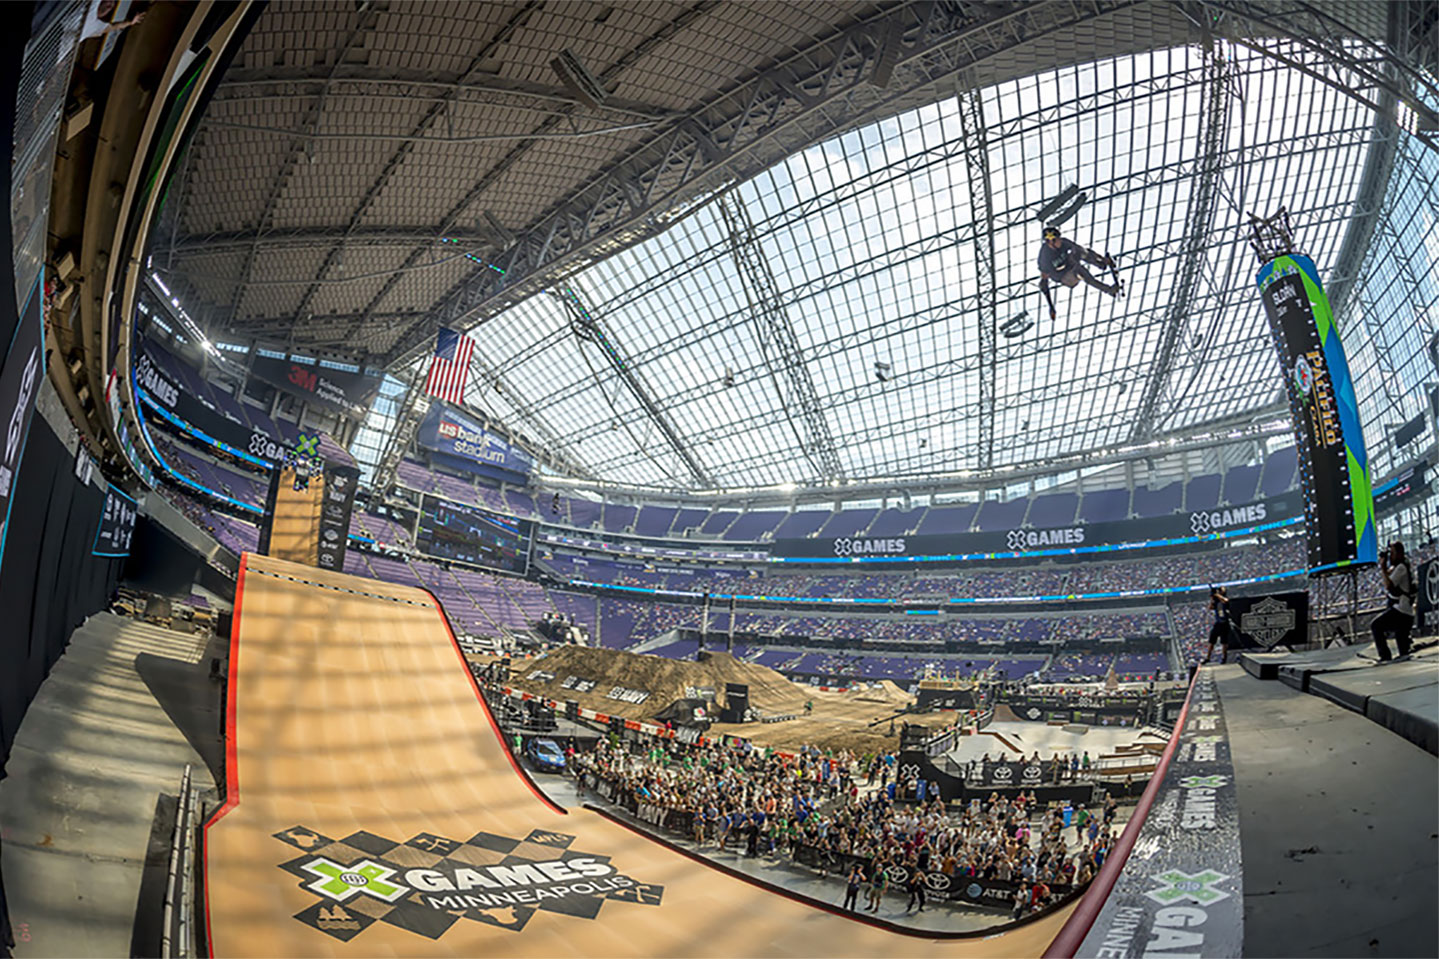 X Games Minneapolis skateboard half pipe